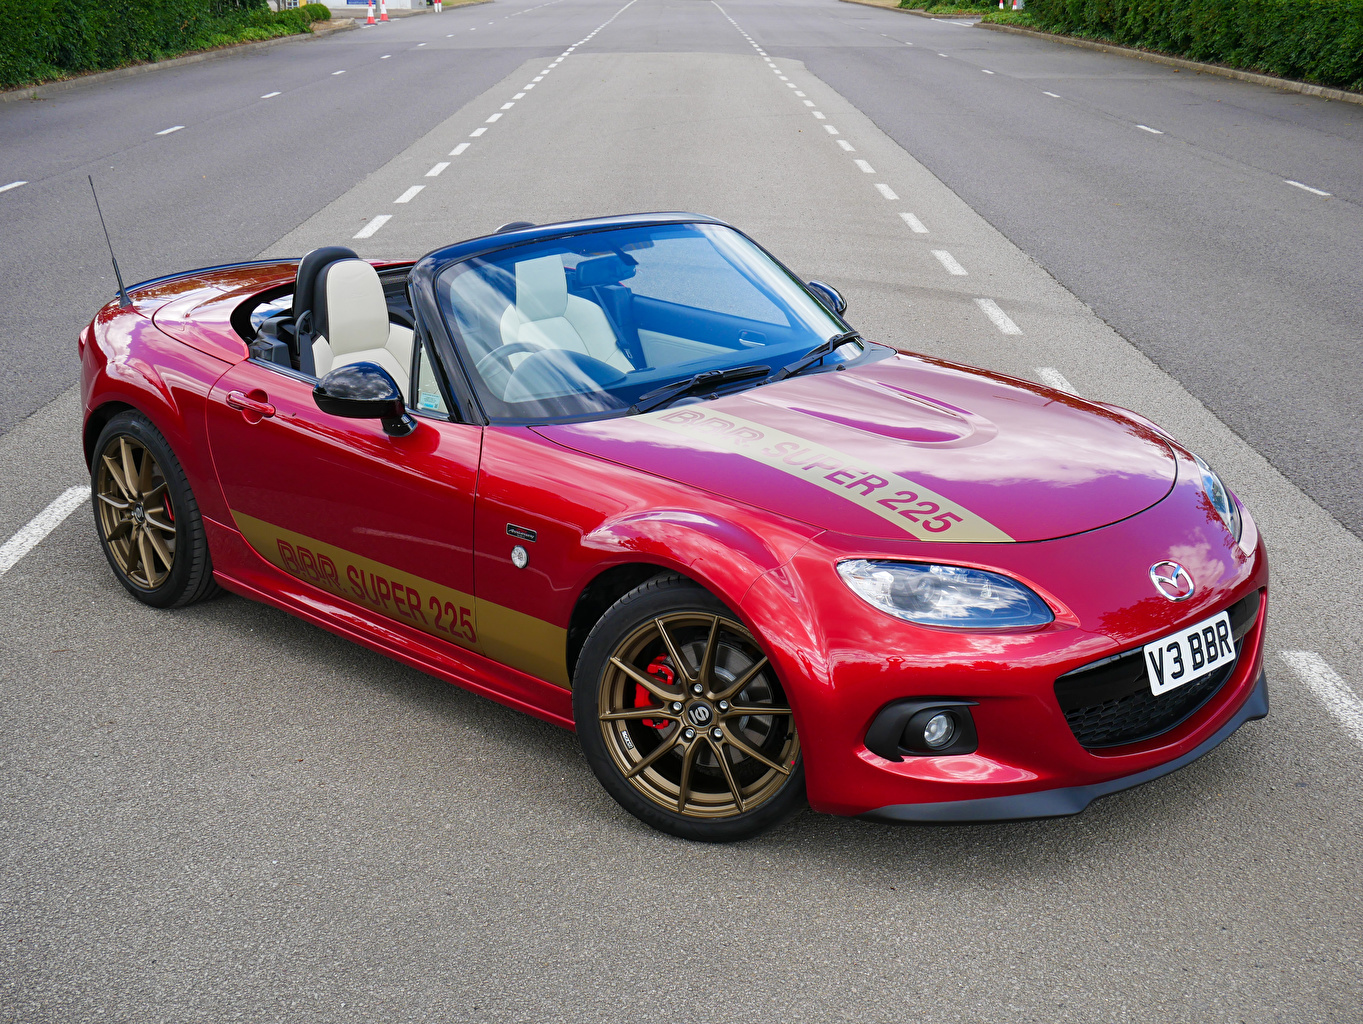 Photo Mazda 2020 MX-5 BBR Super Cabriolet Red Metallic automobile Convertible auto Cars